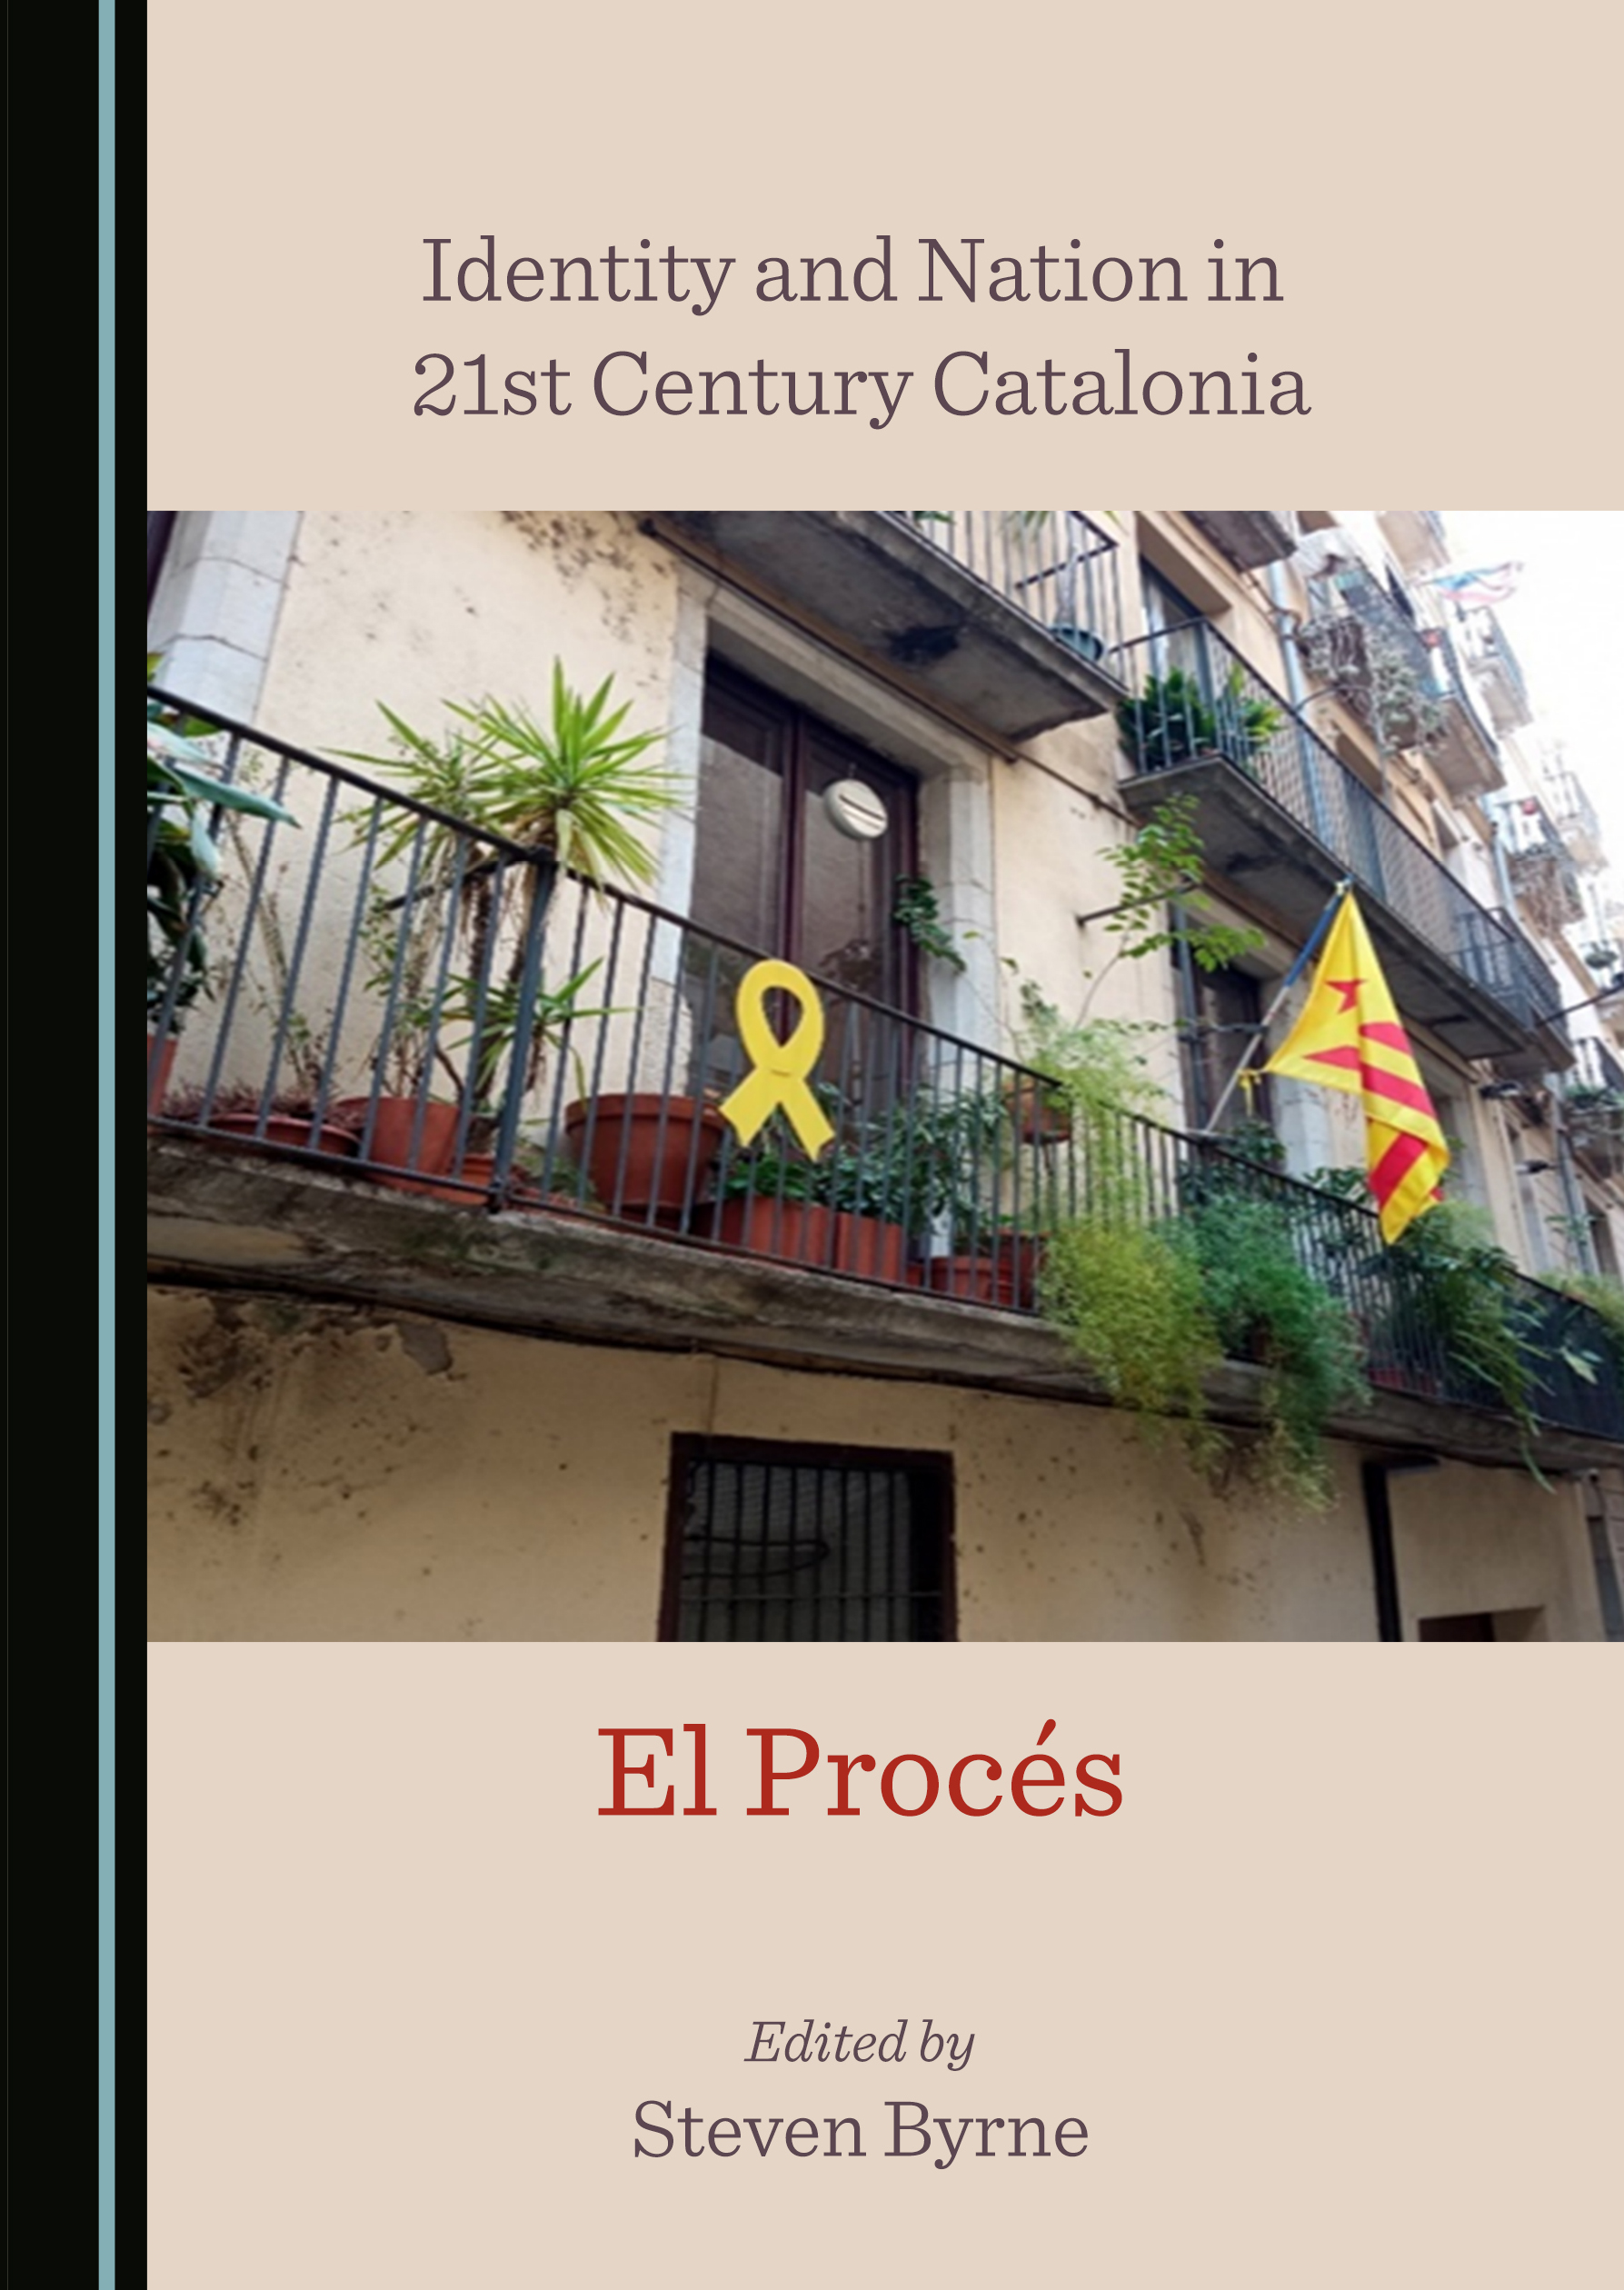 Identity and Nation in 21st Century Catalonia: El Procés